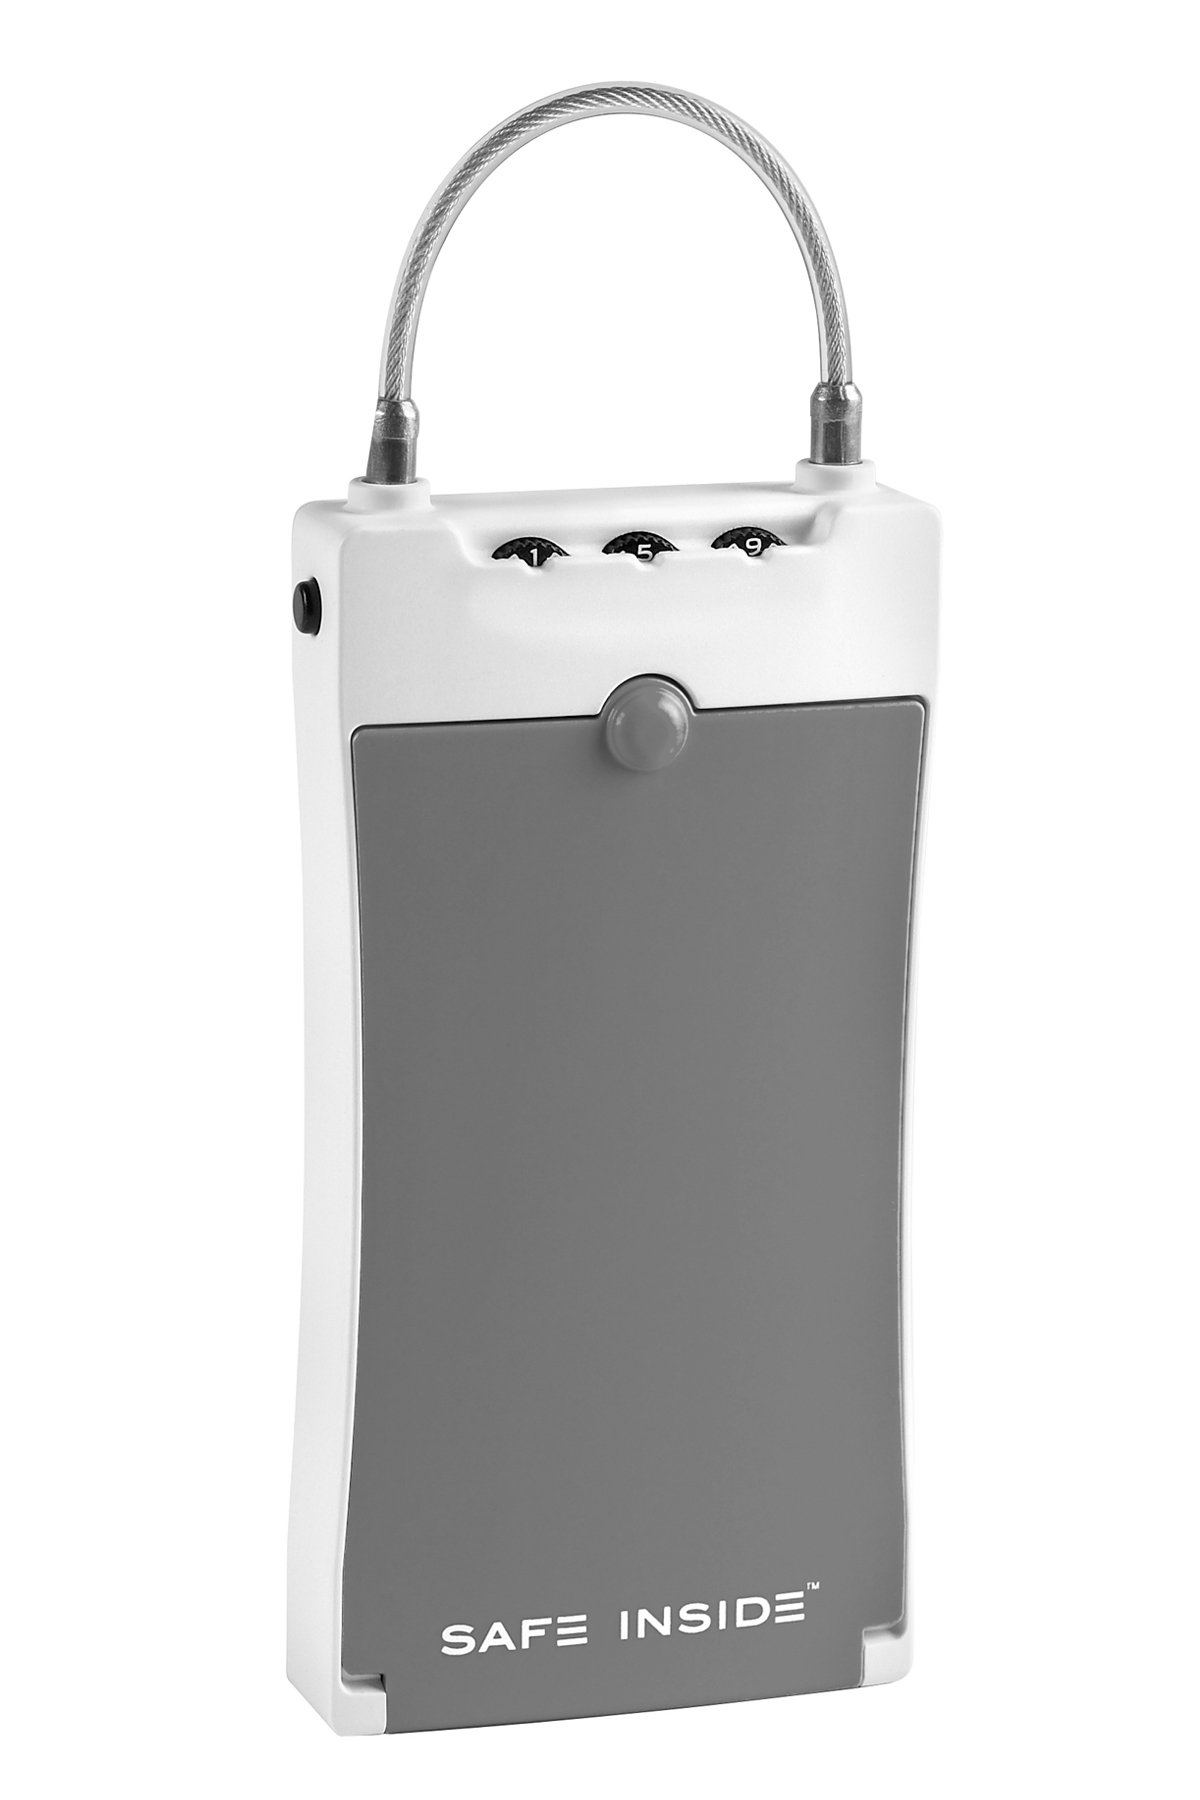 SafeInside Portable Security Case for Securing Small Items, Grey